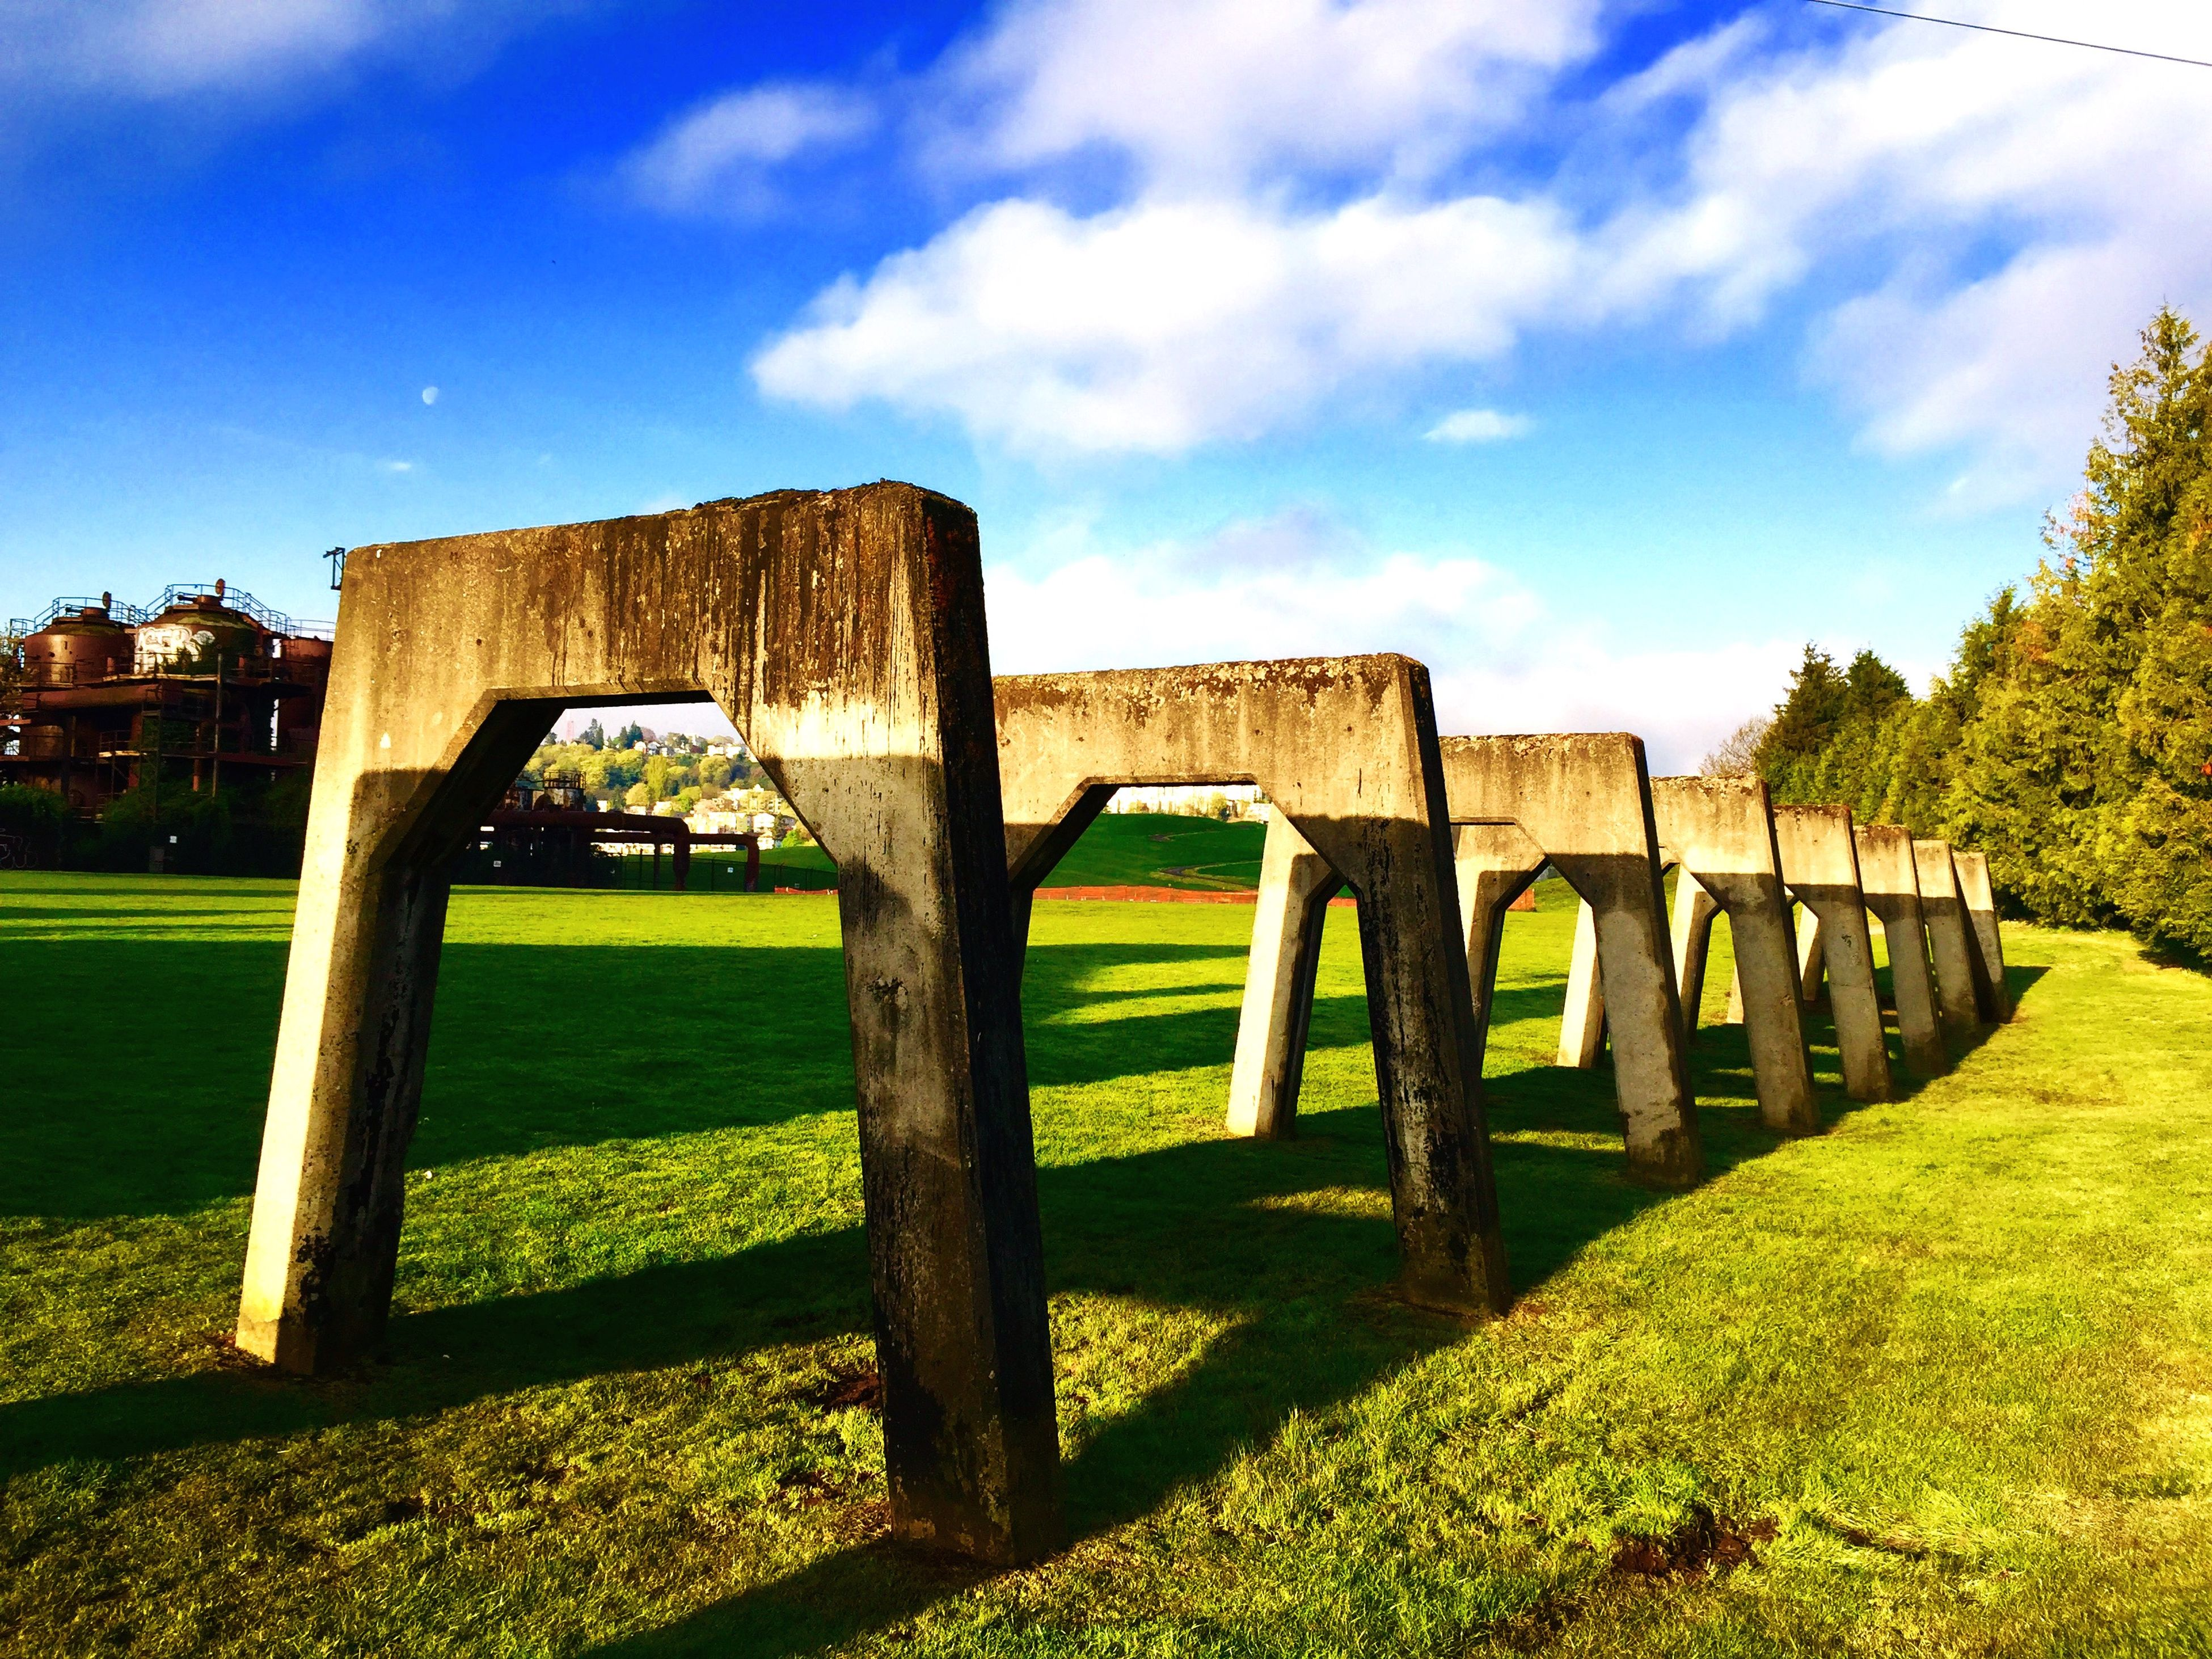 grass, sky, built structure, architecture, tranquility, cloud - sky, cloud, field, tree, tranquil scene, nature, green color, wood - material, scenics, landscape, day, grassy, shadow, outdoors, sunlight